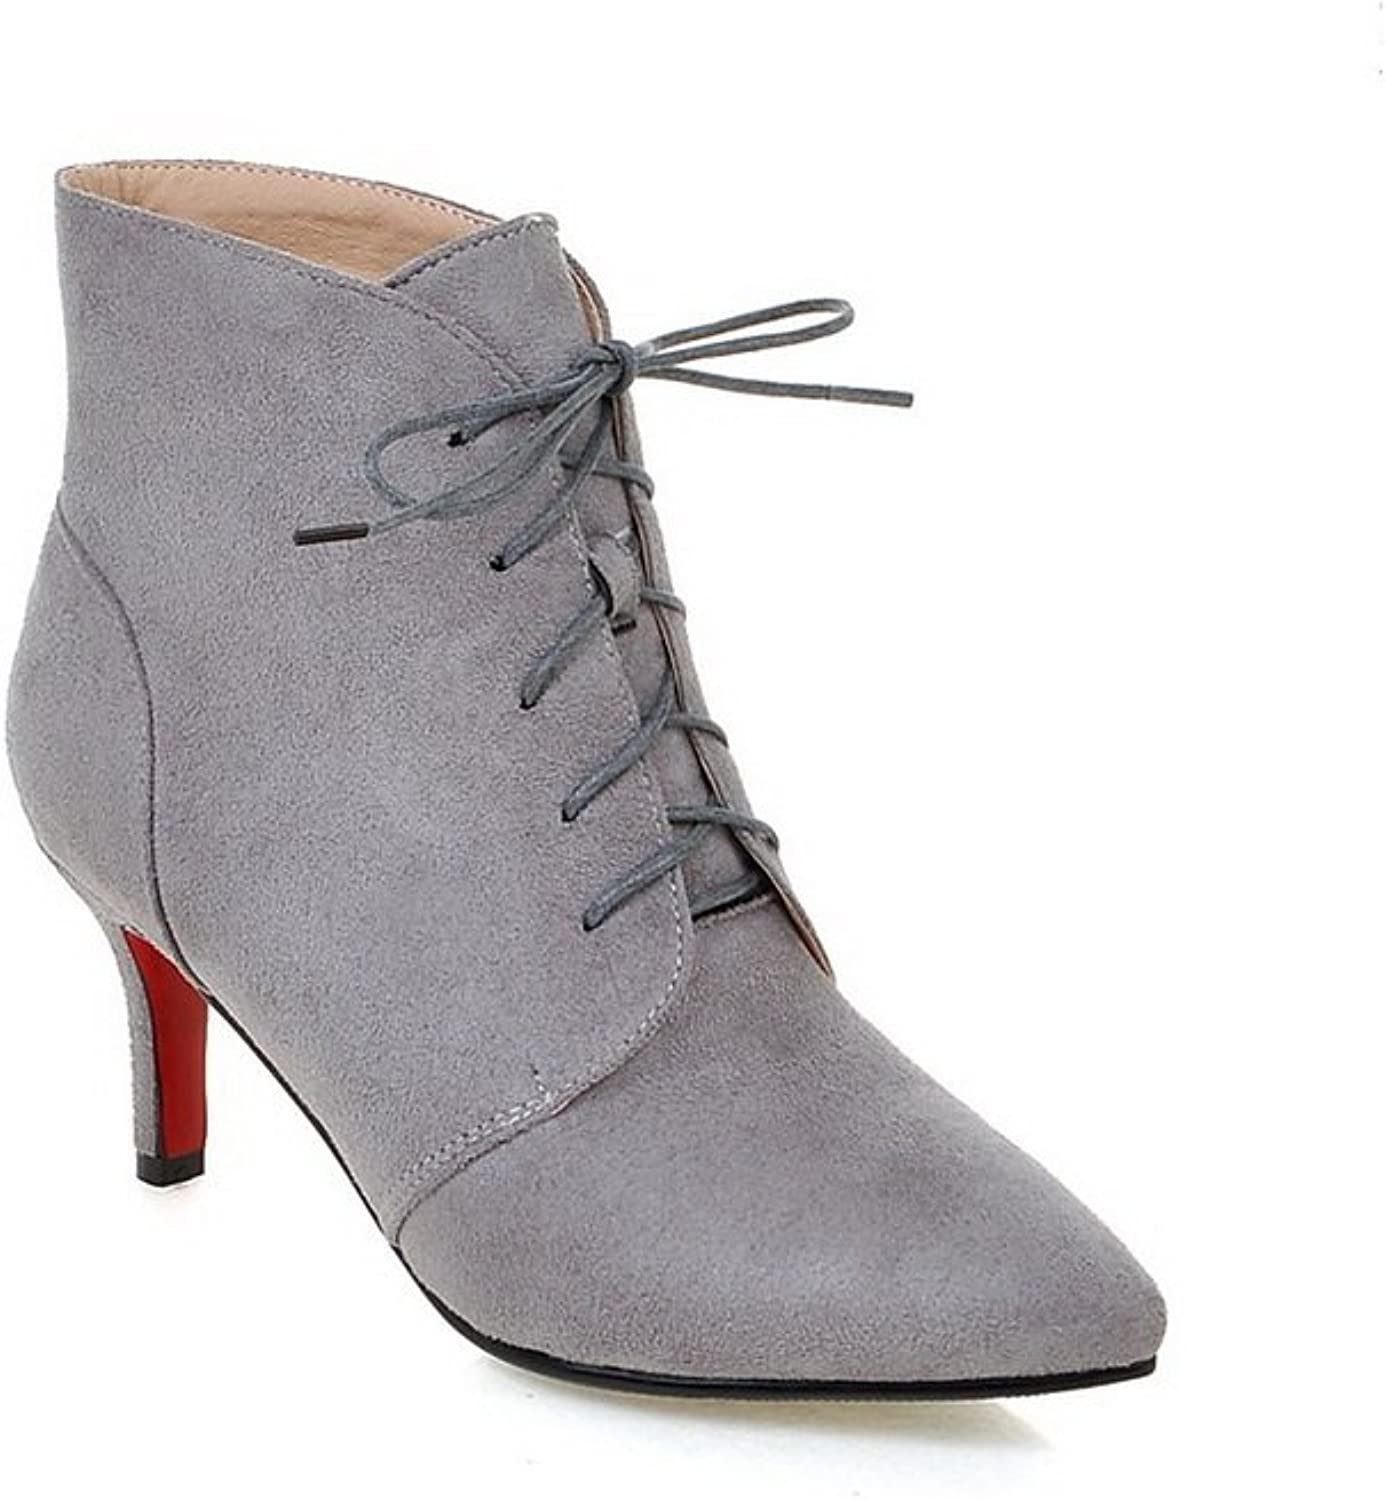 AdeeSu Womens Dress Pointed-Toe Slip-Resistant Suede Boots SXC02159